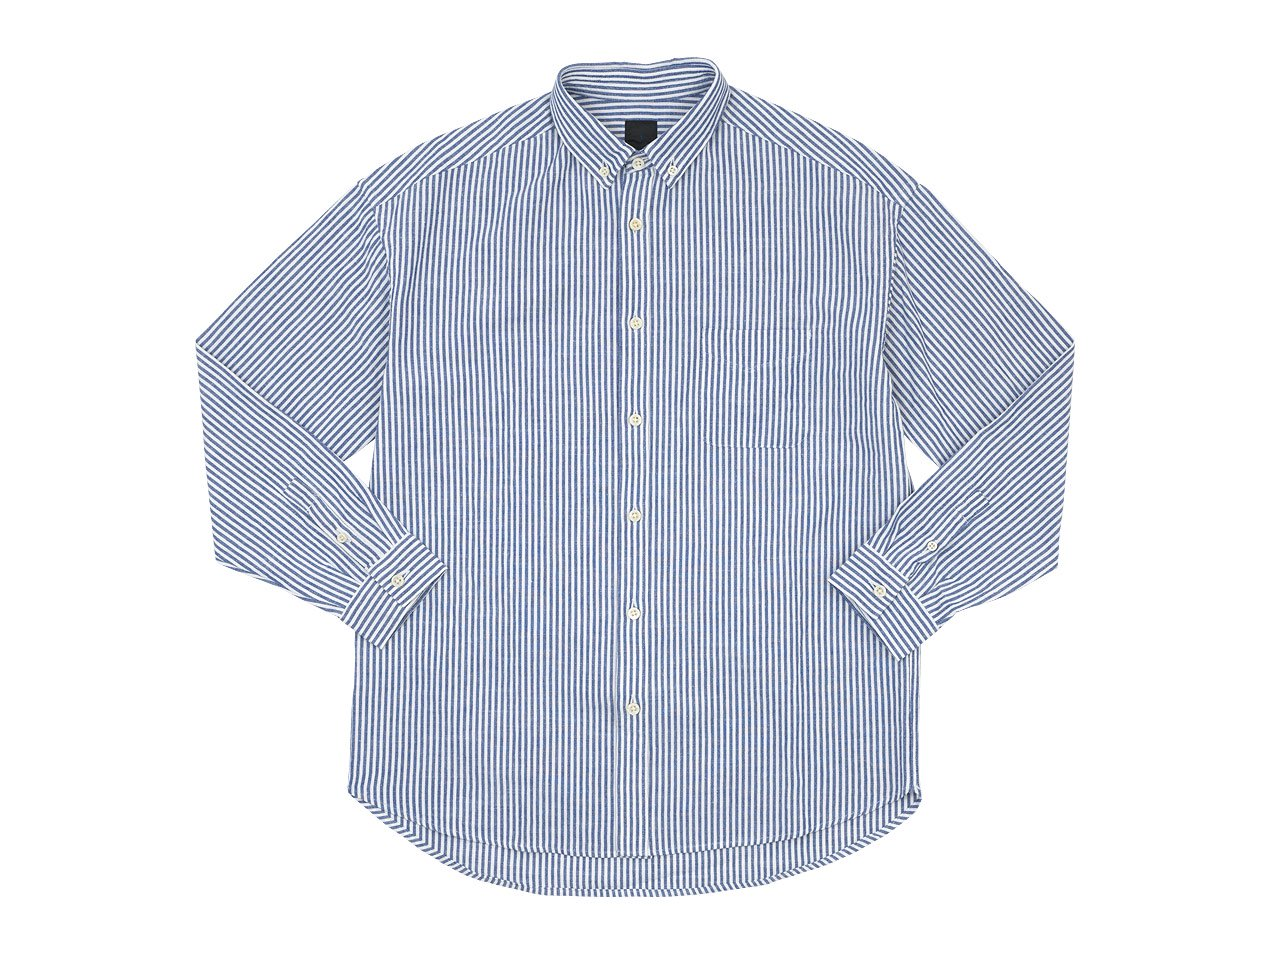 maillot sunset relax B.D. shirts BLUE STRIPE